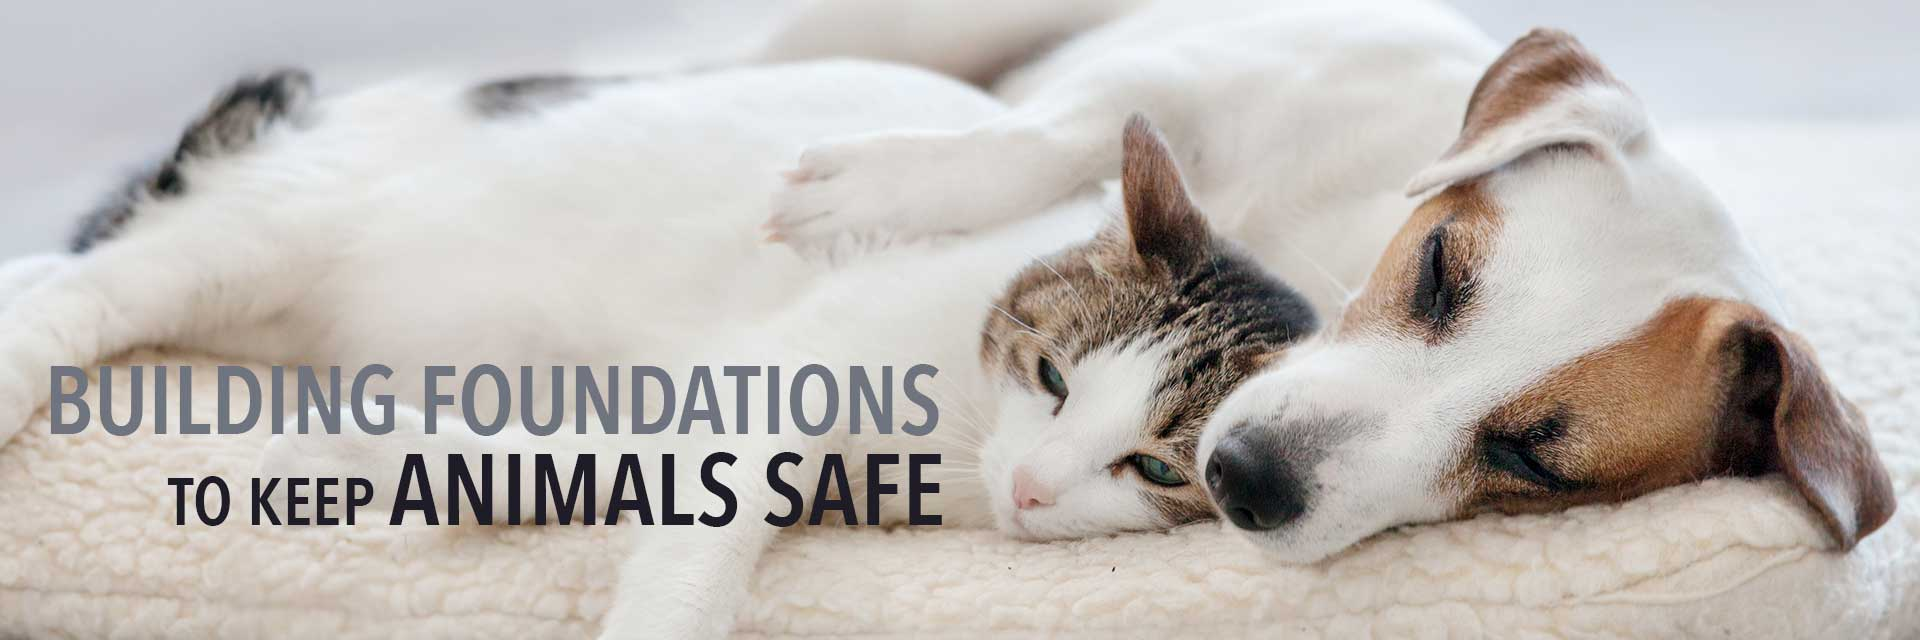 Building Foundations to Keep Animals Safe